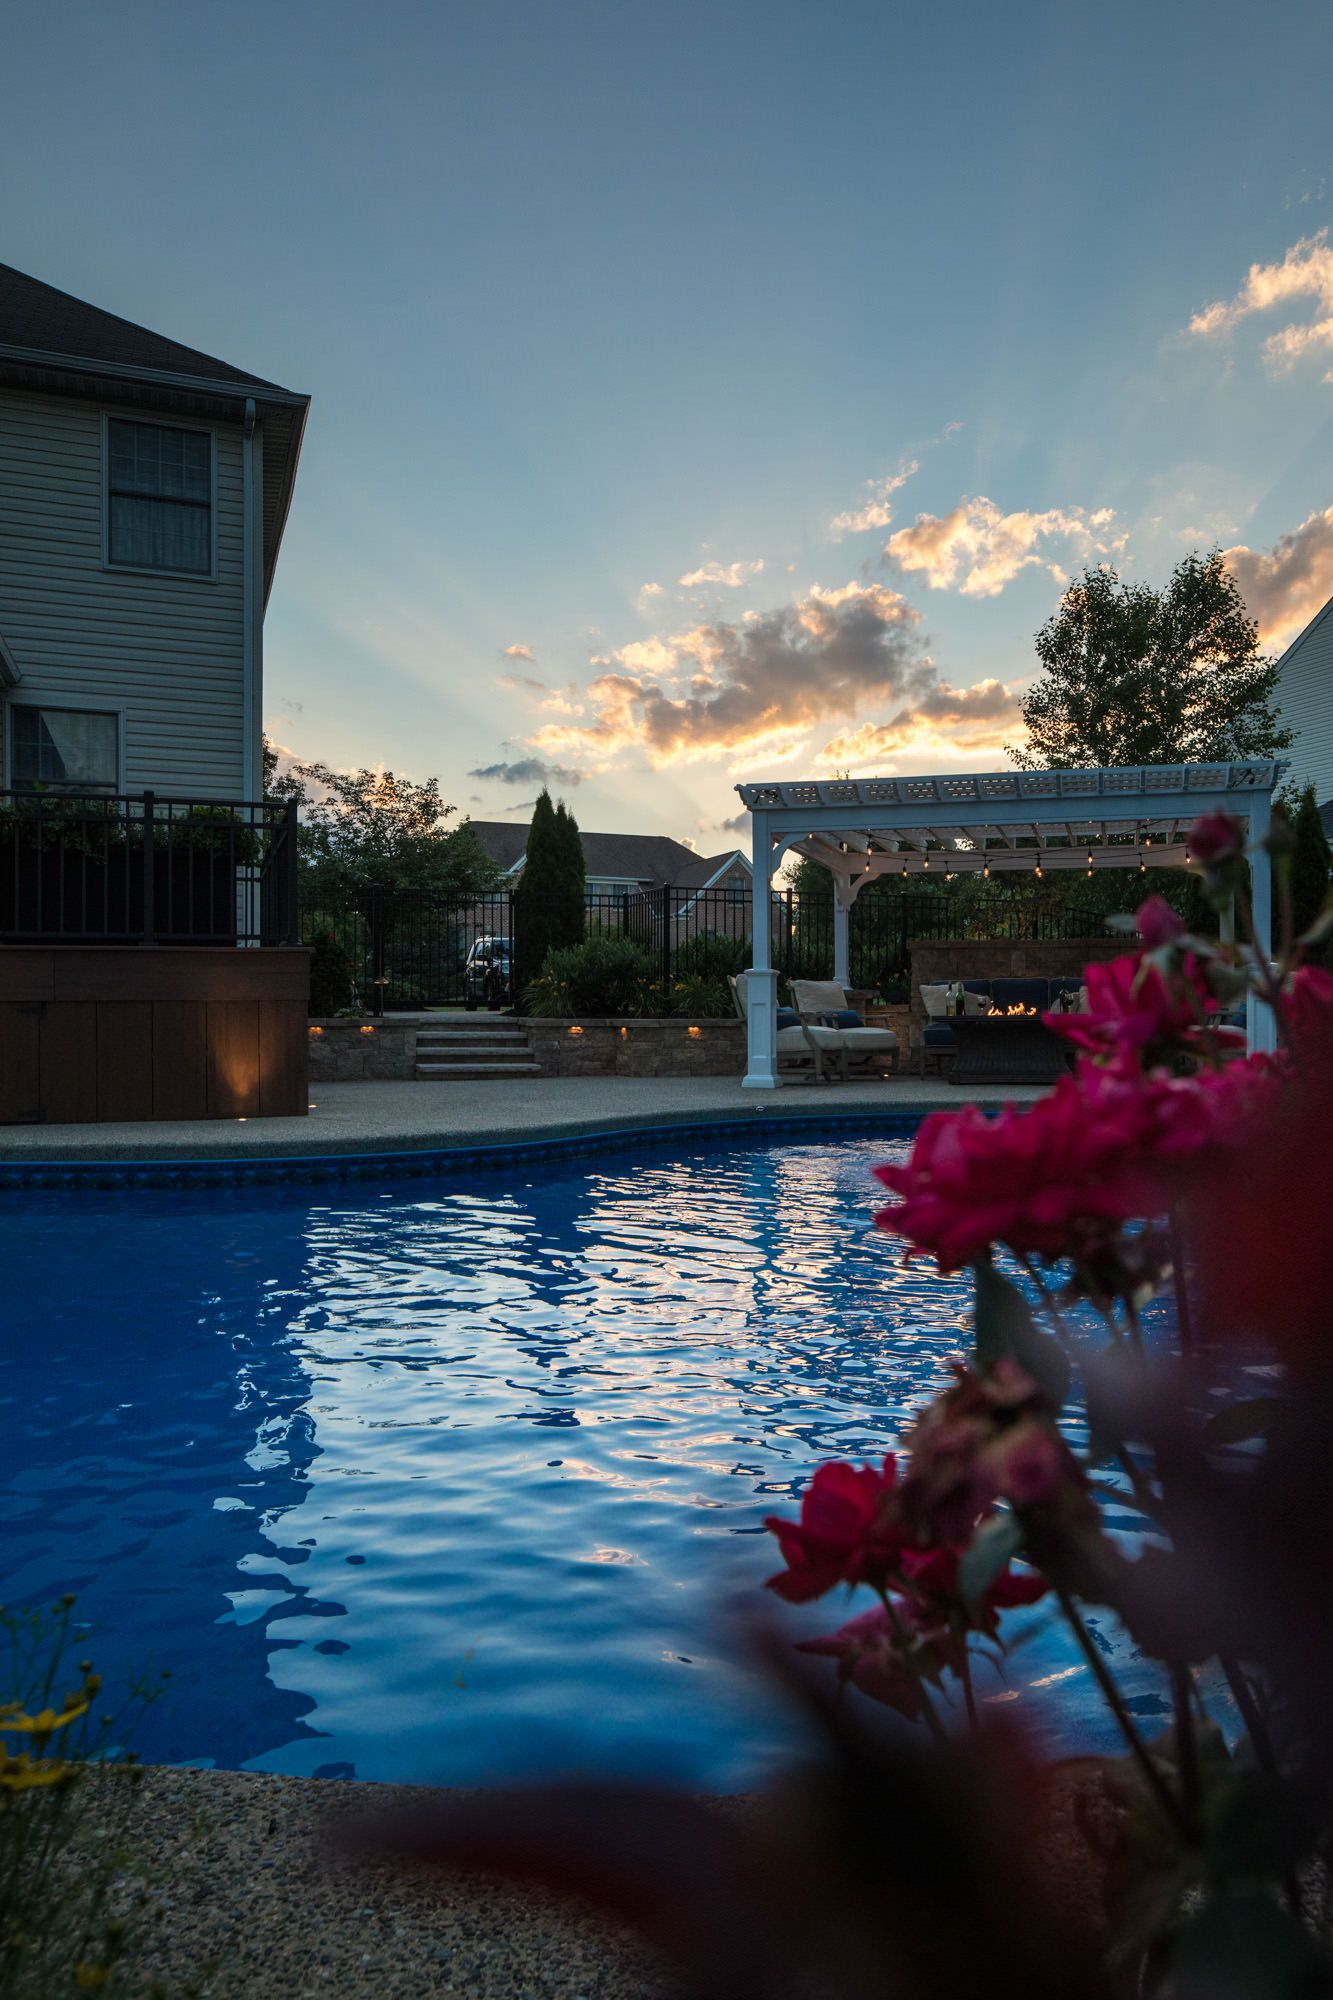 As the sun sets, these clients can sit back and thoroughly enjoy their time in their own backyard.